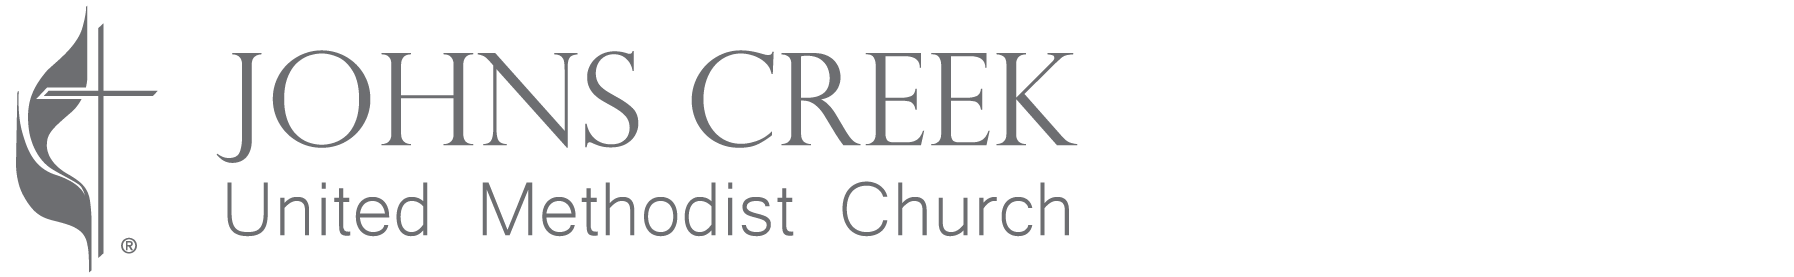 Johns Creek United Methodist Church